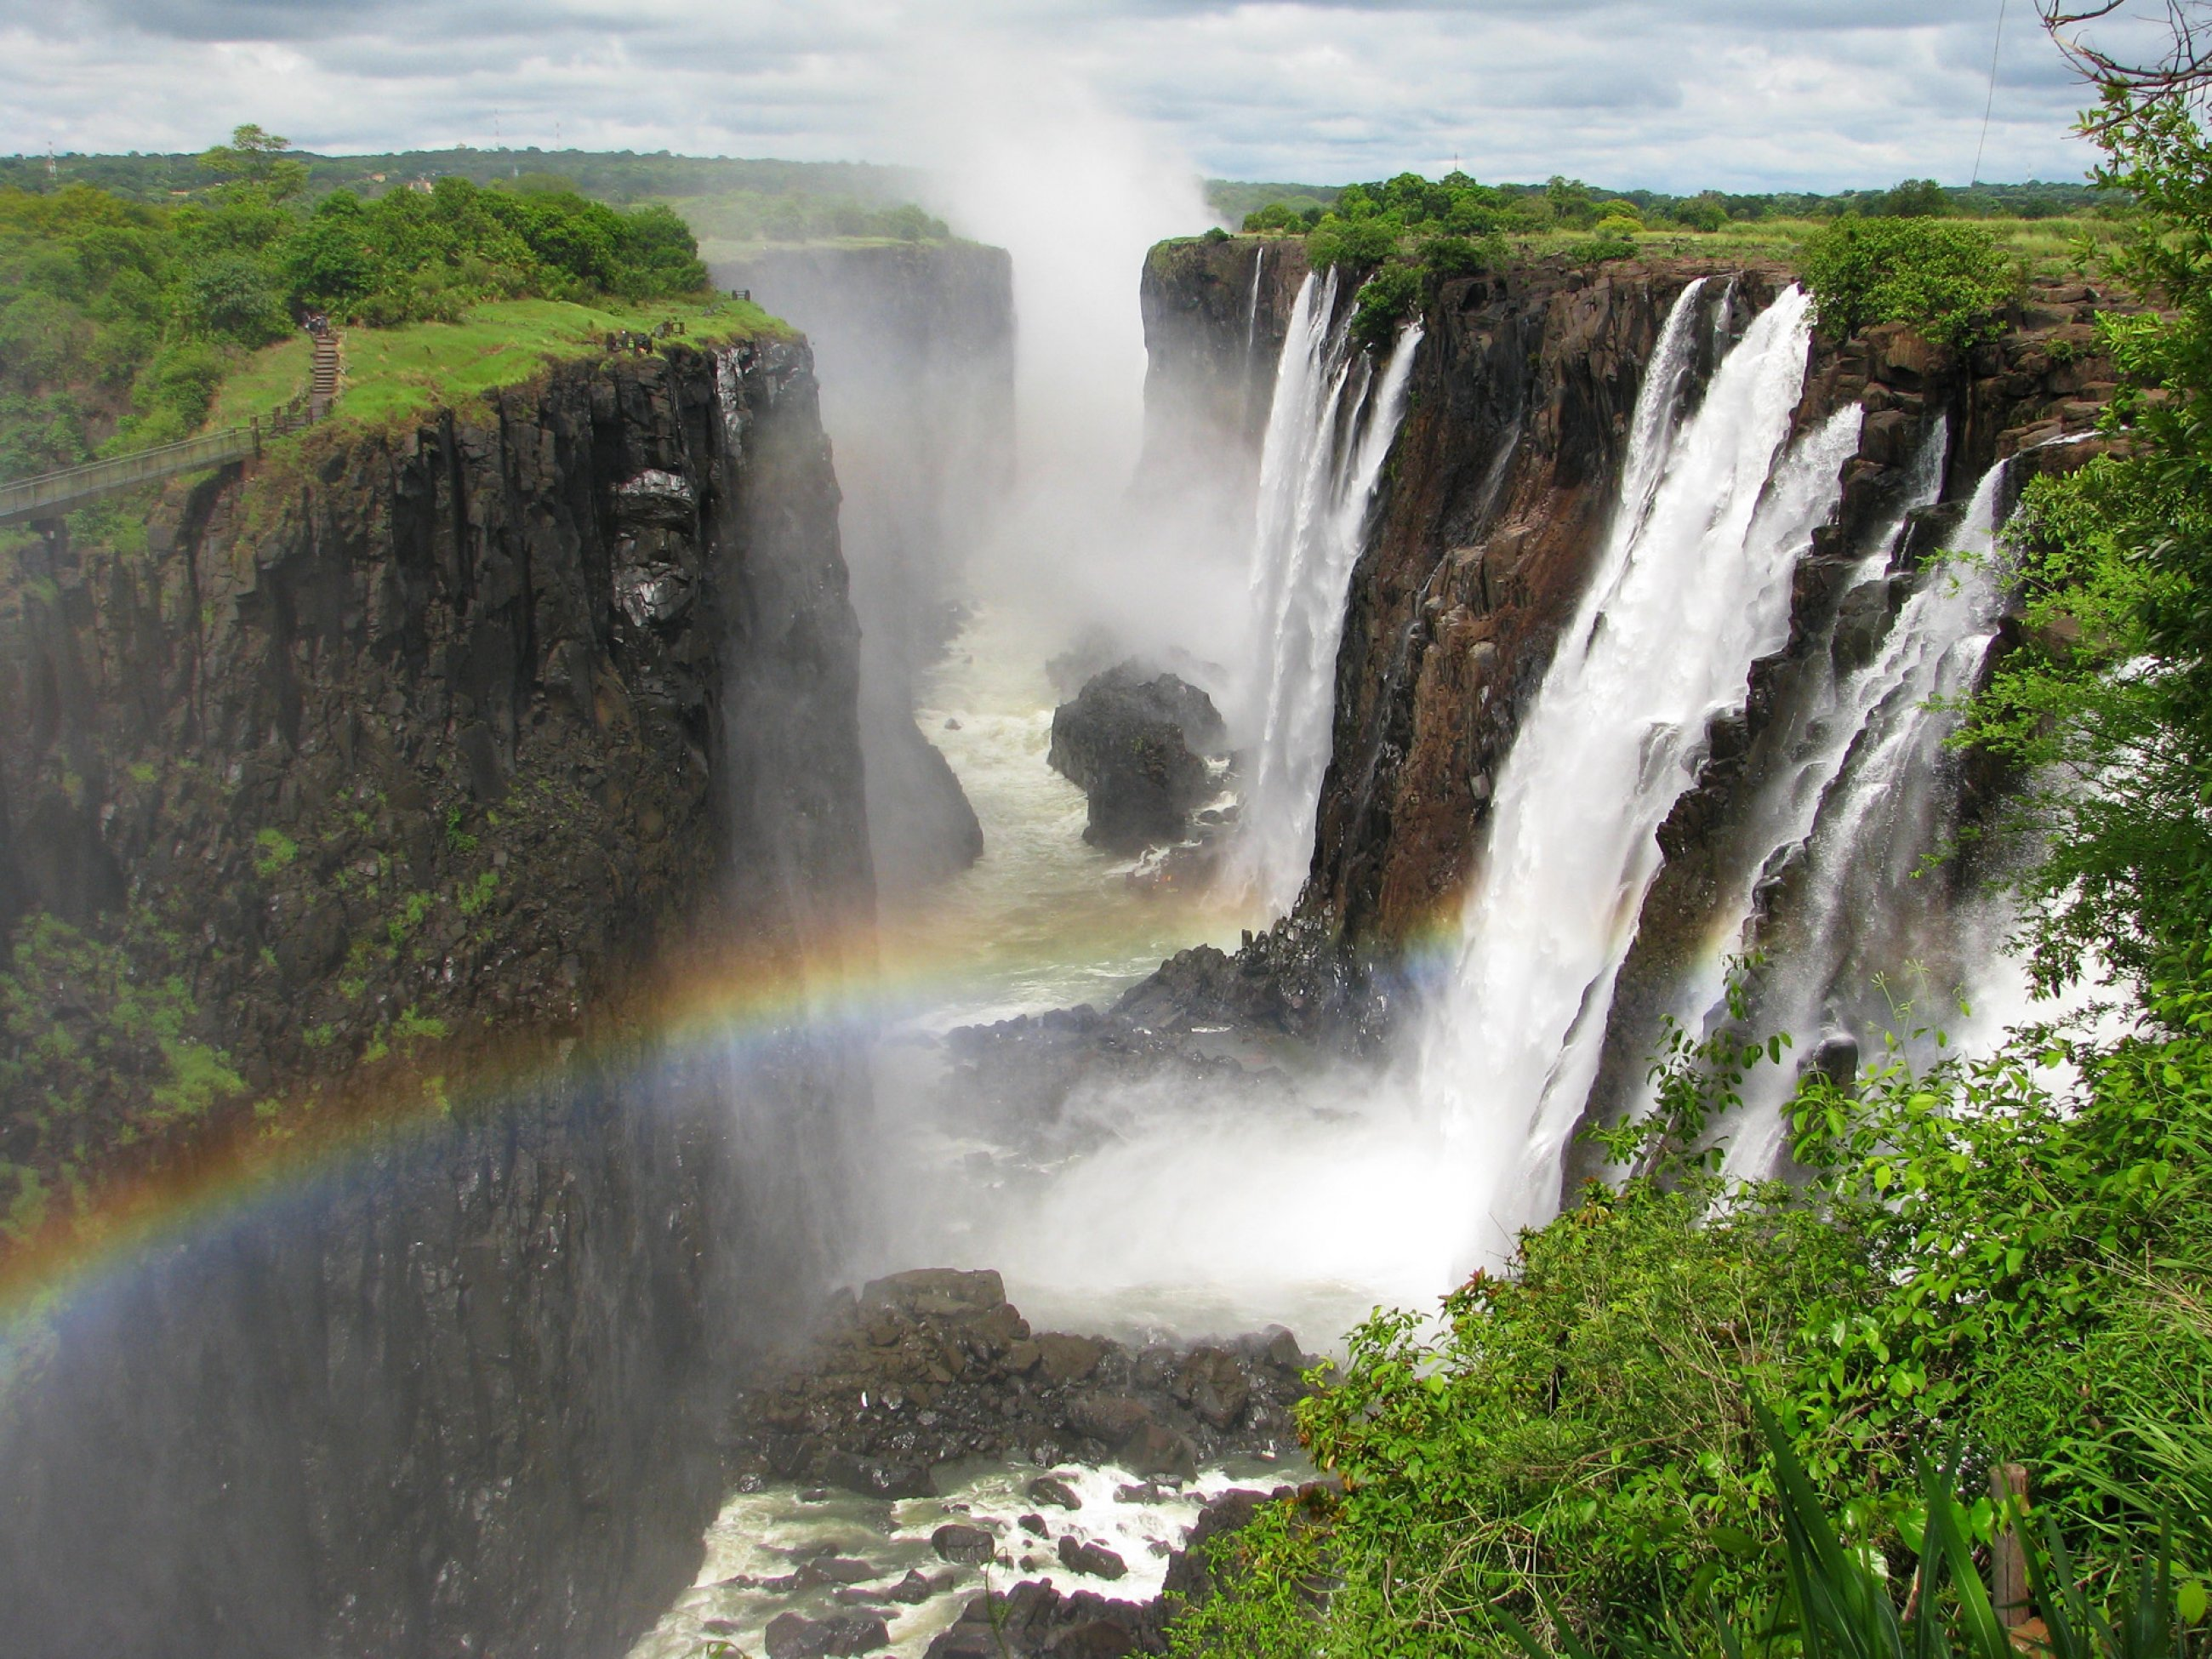 https://bubo.sk/uploads/galleries/16228/total-victoria-falls-dreamstime-xl-24692847.jpg